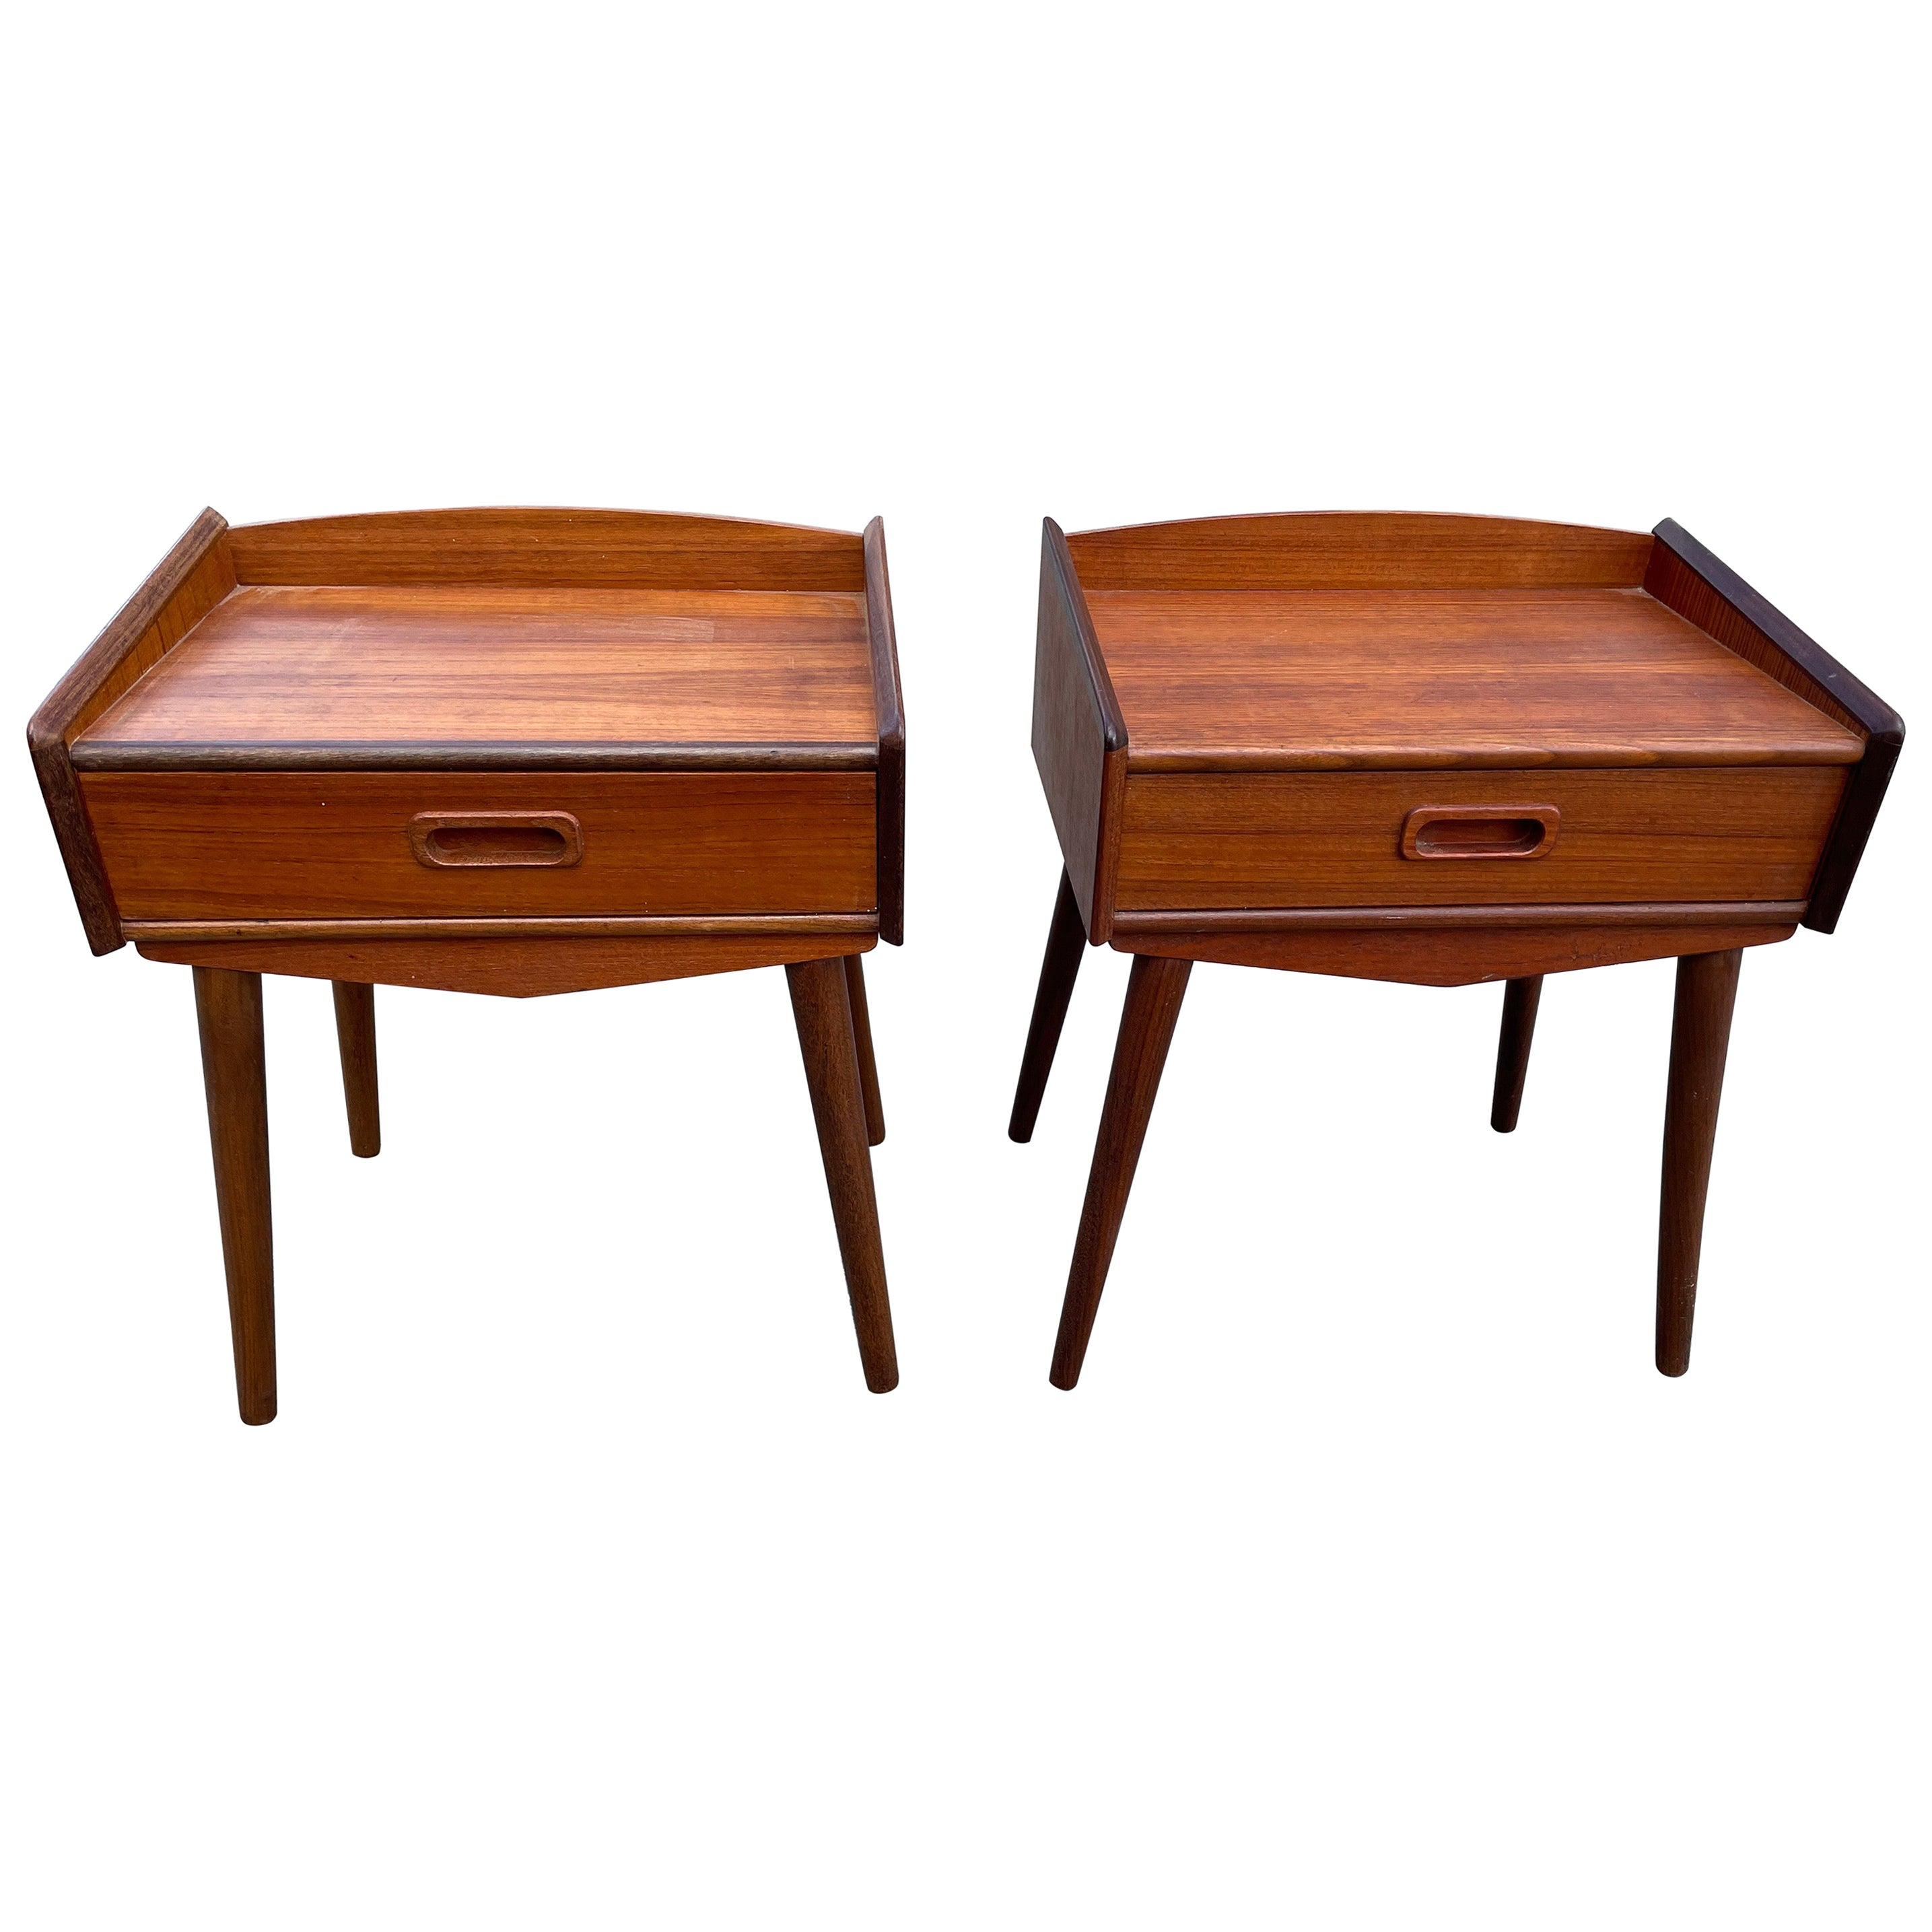 Set of Danish Mid-Century Modern Teak Nightstands, 1960's